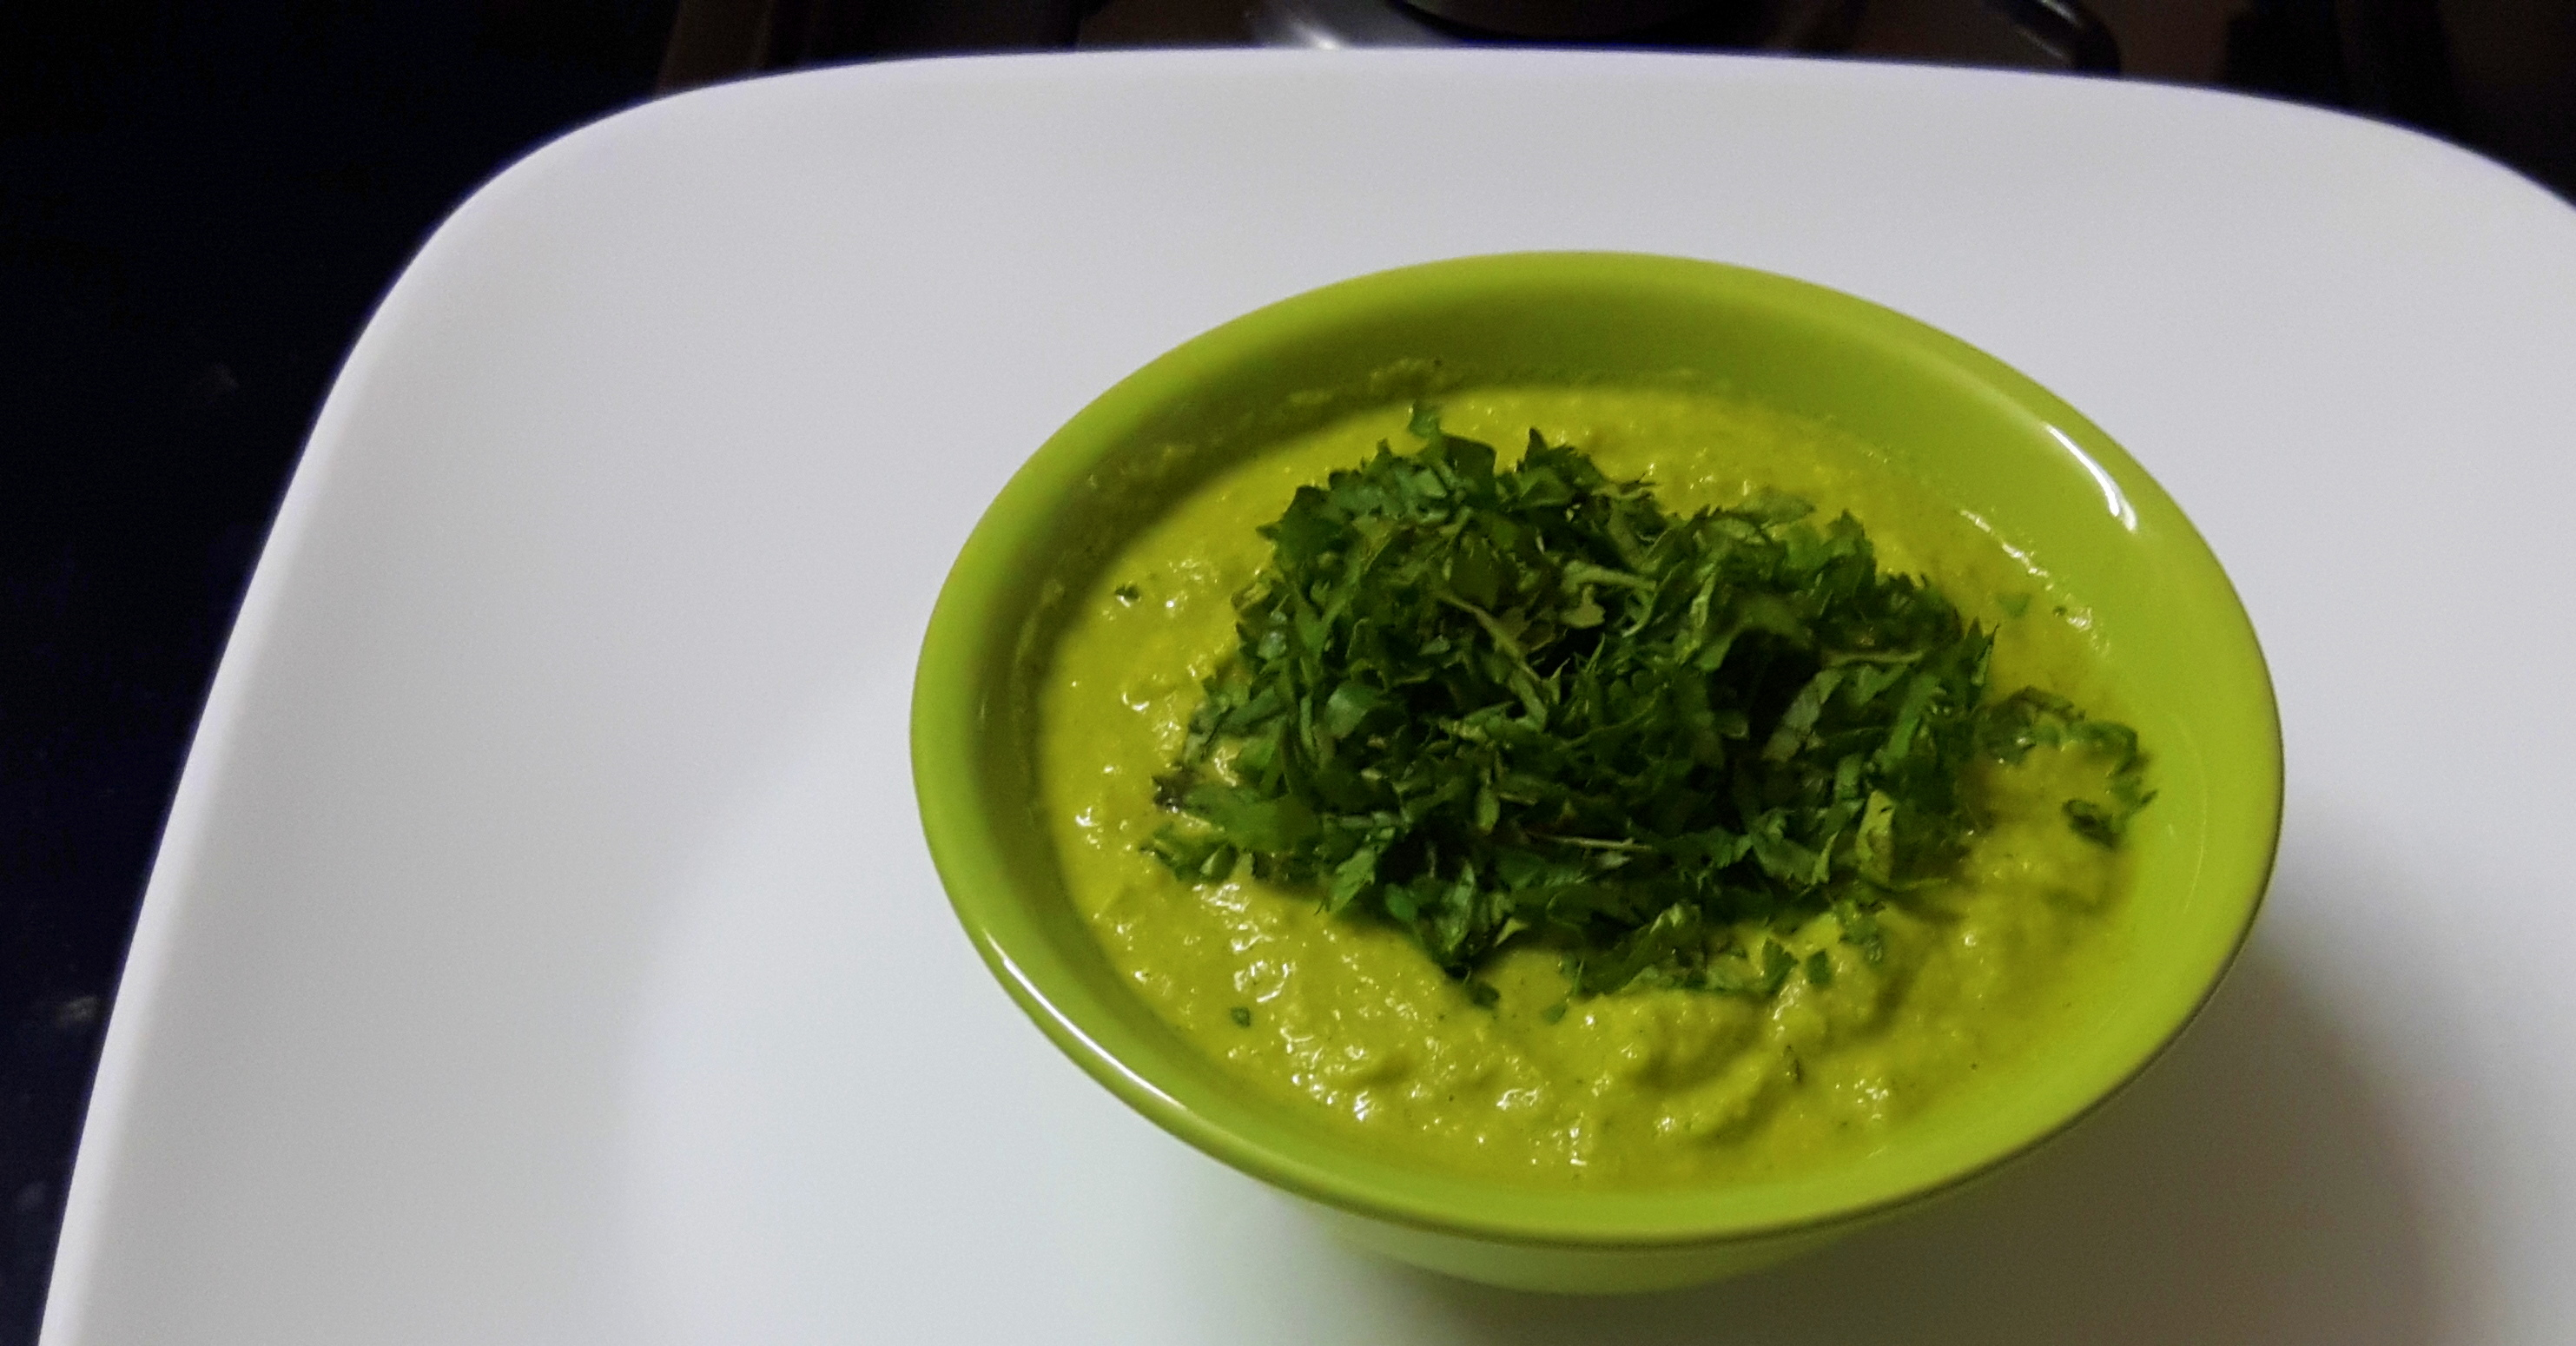 garnish with chopped coriander leaves